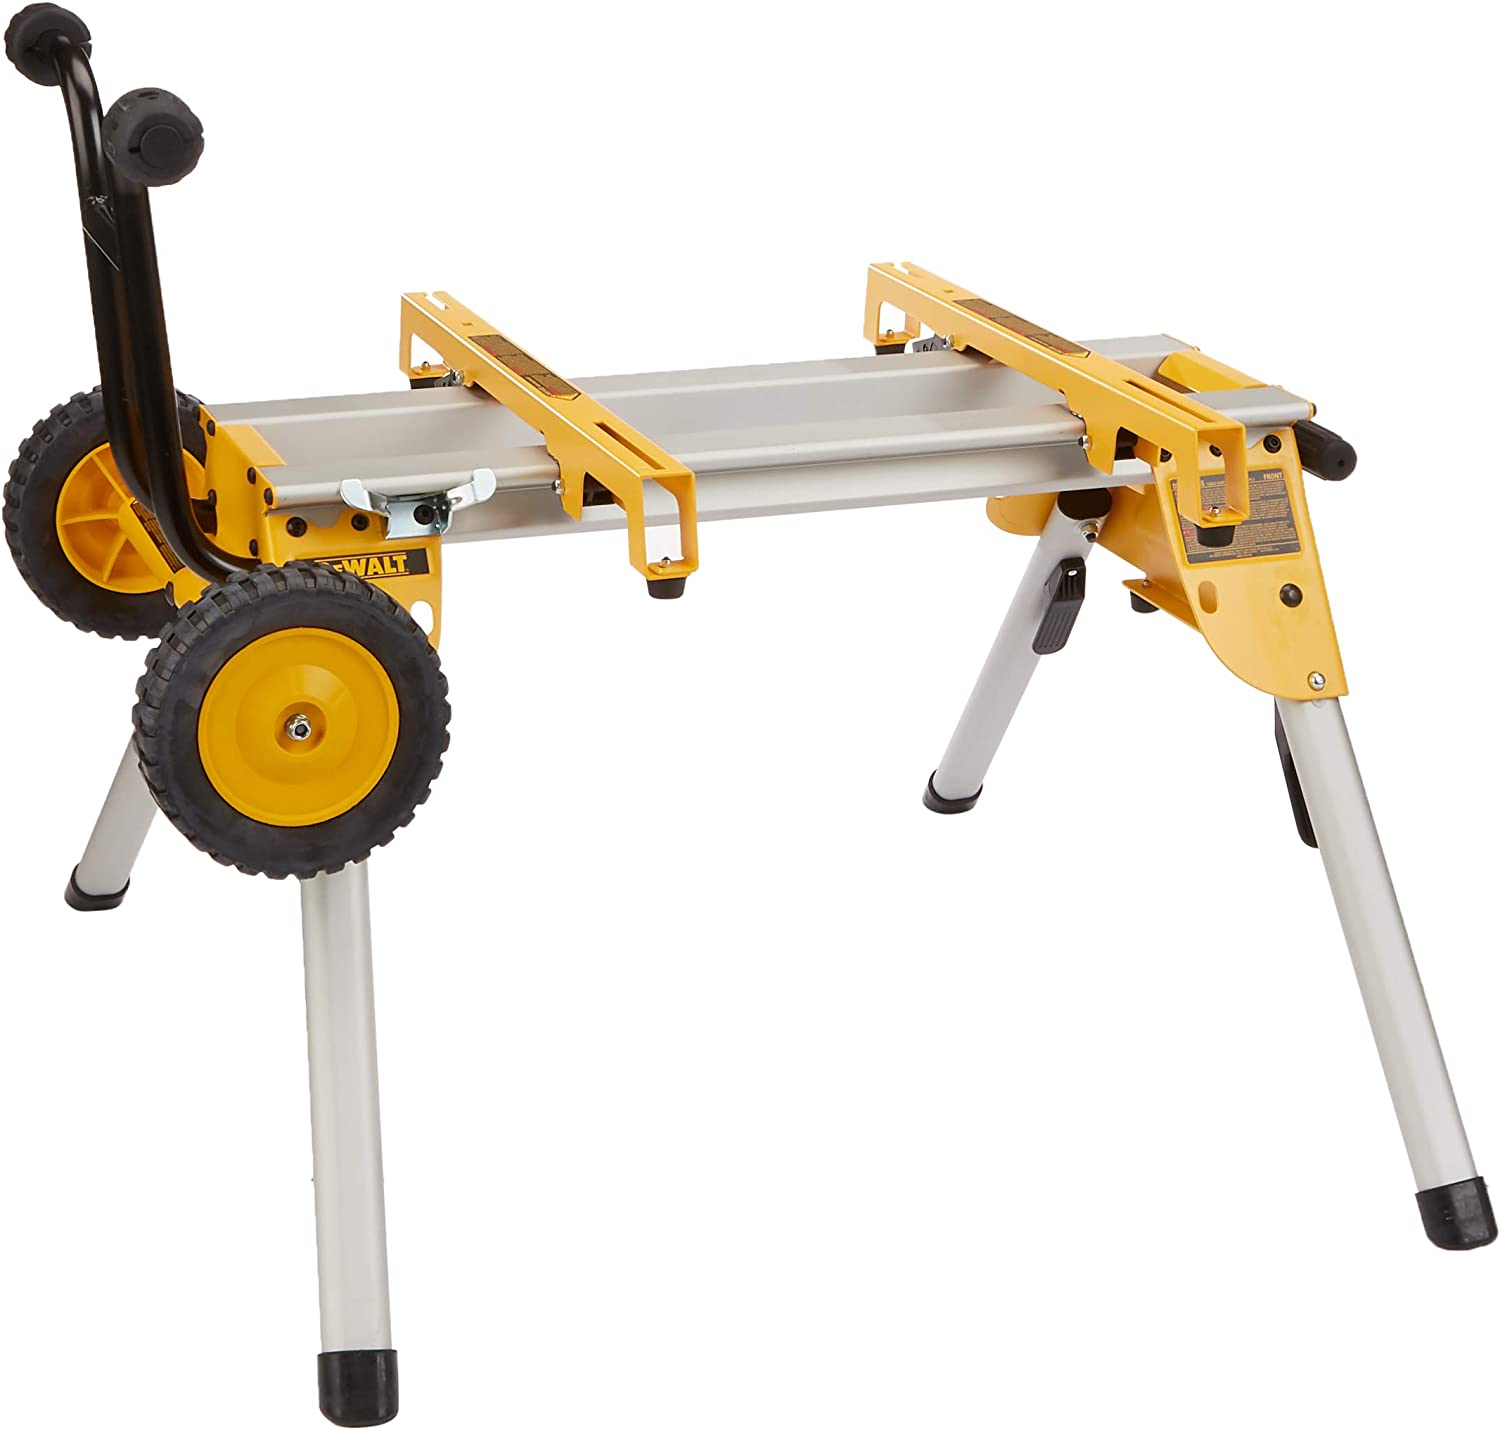 Best miter saw stand: DEWALT DW7440RS Mobile/Rolling Table Saw Stand